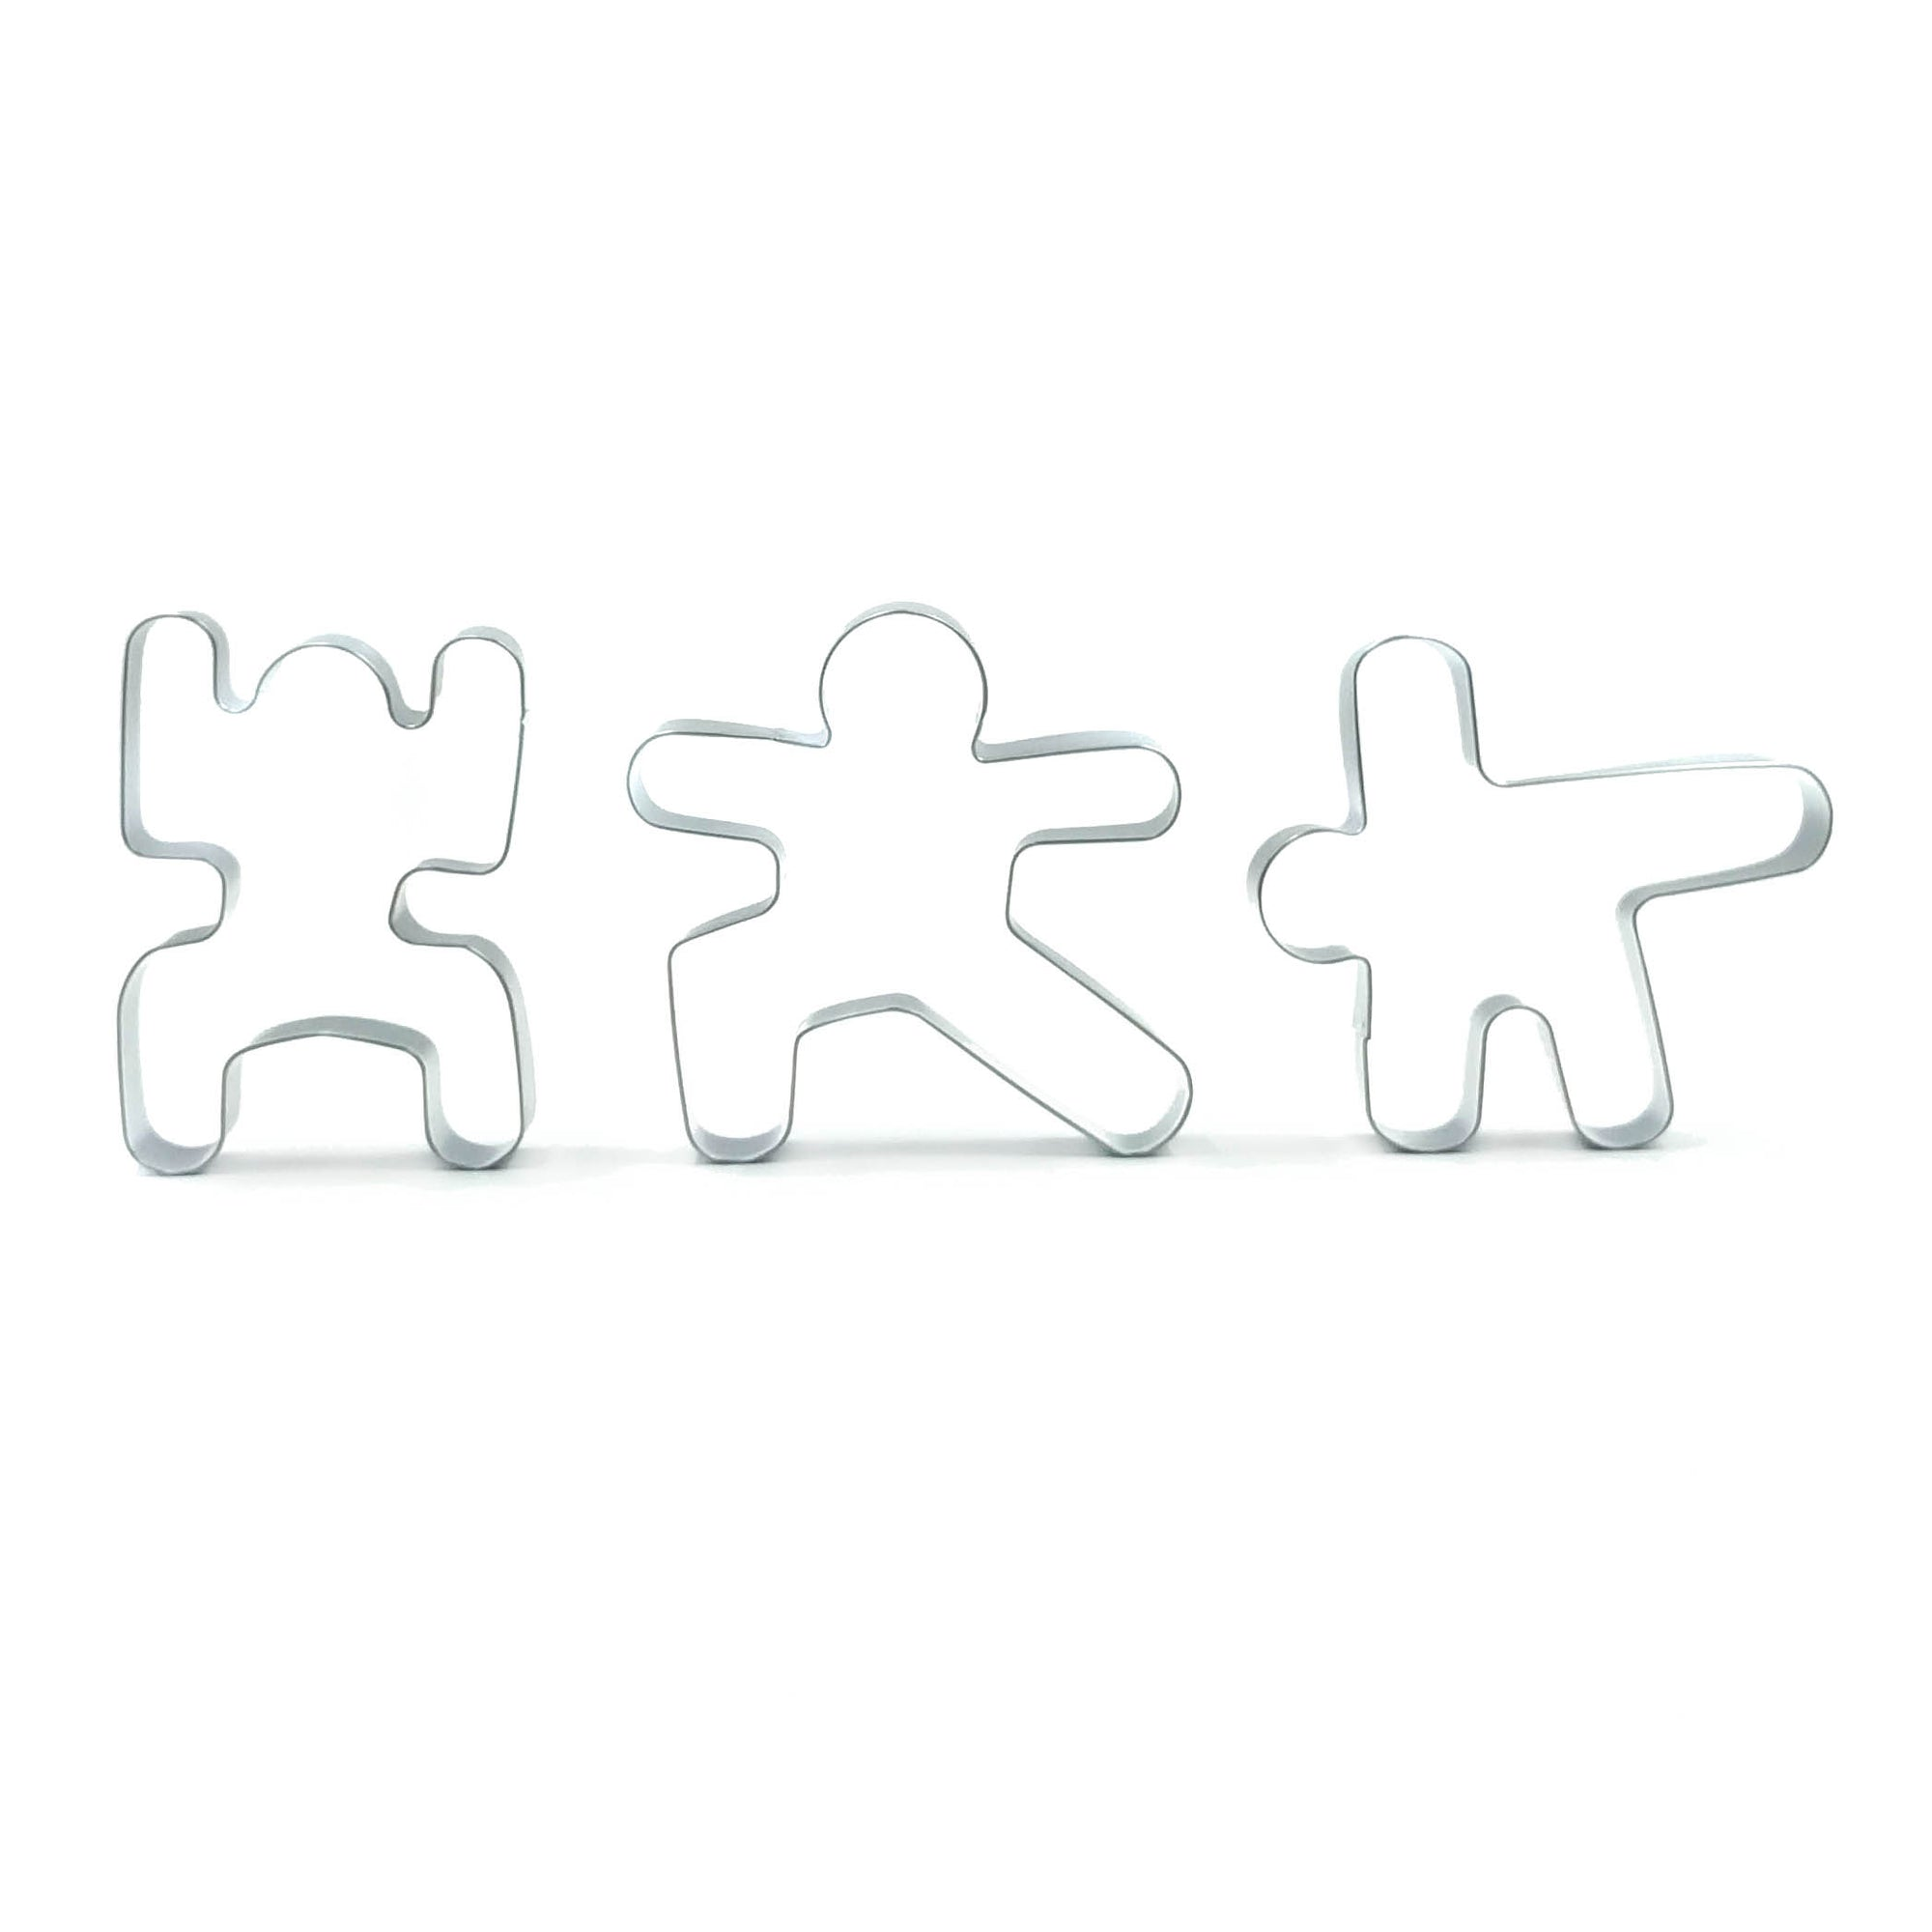 Yoga Pose Cookie Cutters - Kindfolk Athletics